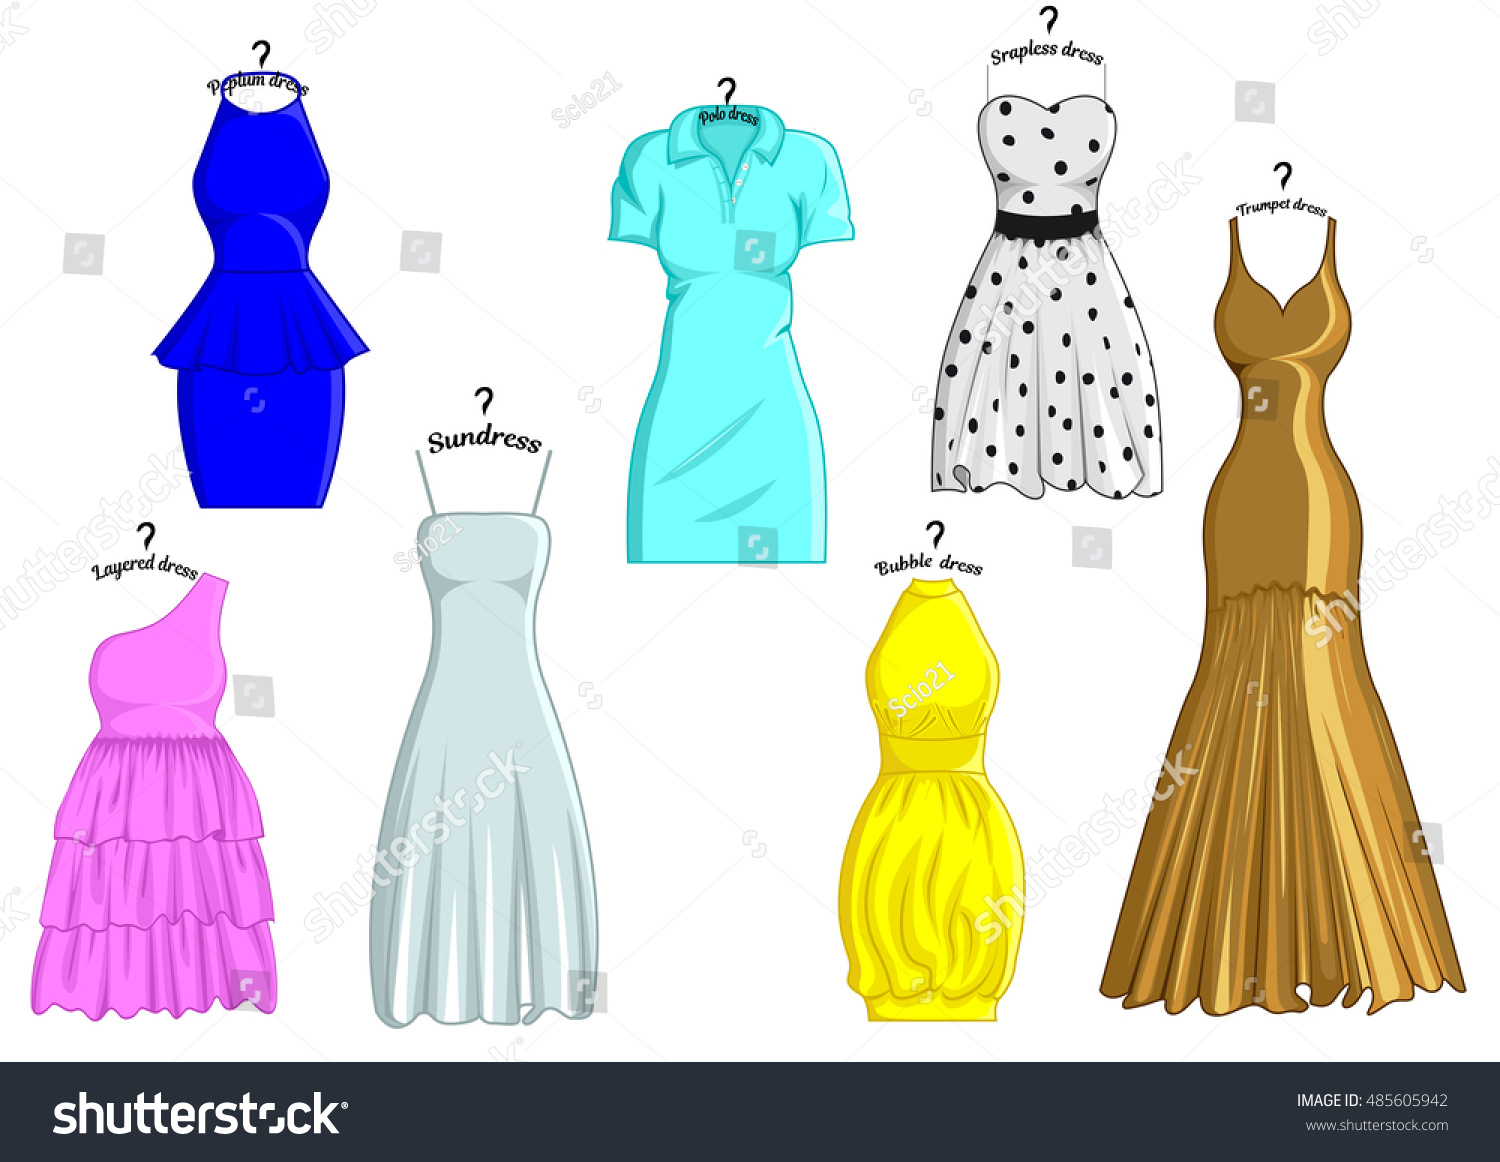 Old style dress names styles